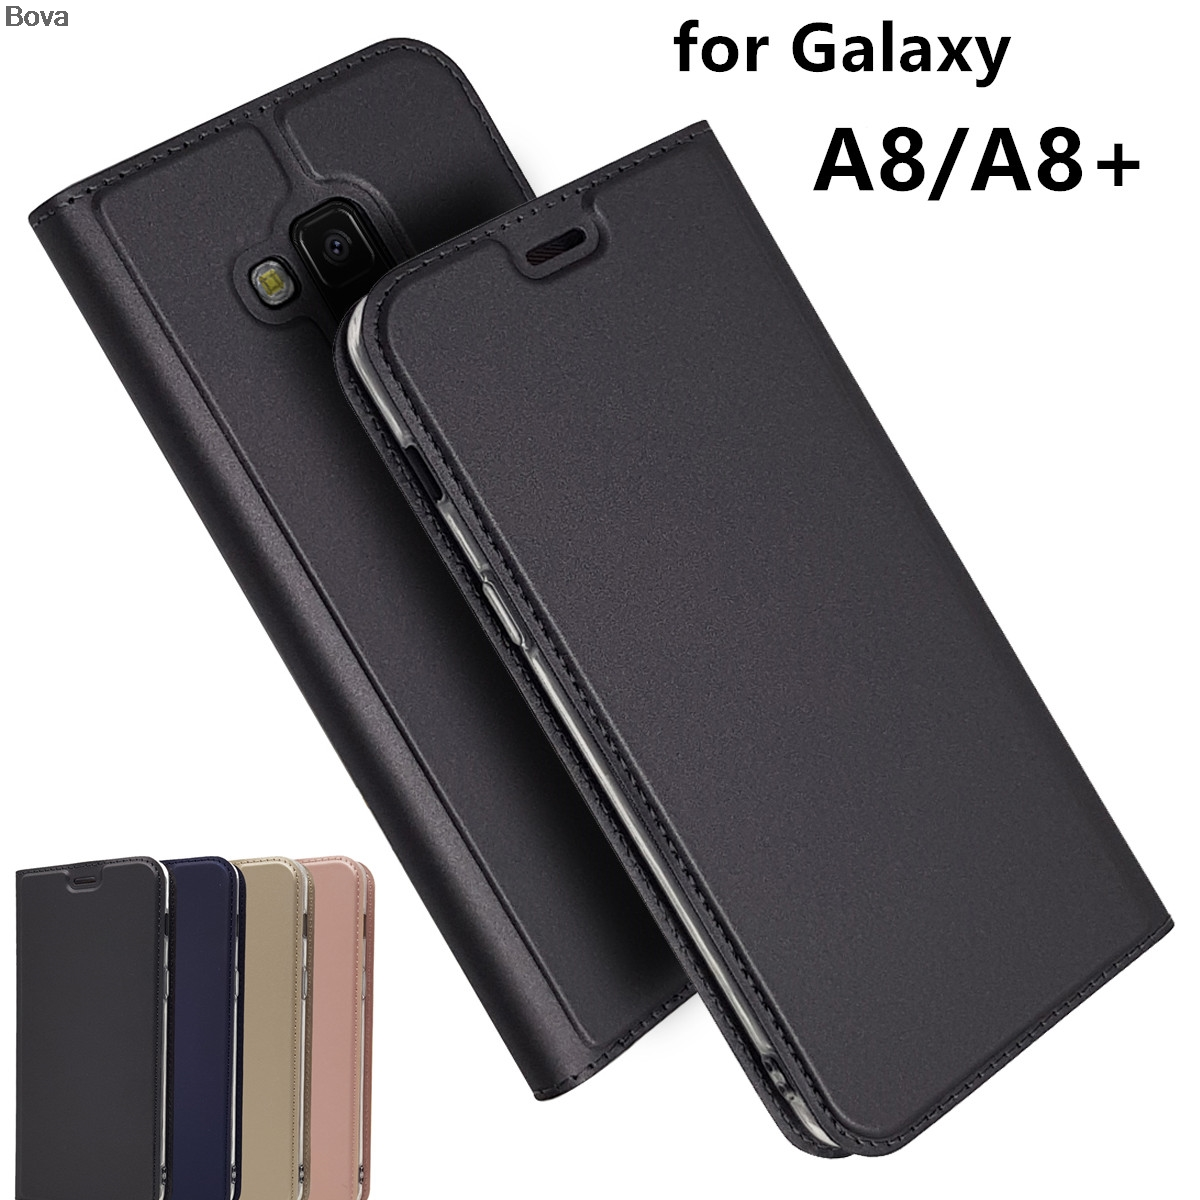 Wallet style Magnetic Adsorption Case Pu Leather for <font><b>Samsung</b></font> Galaxy A8 2018 <font><b>A530F</b></font> / A8 Plus+2018 A730F Matte Flip <font><b>Cover</b></font> Case image